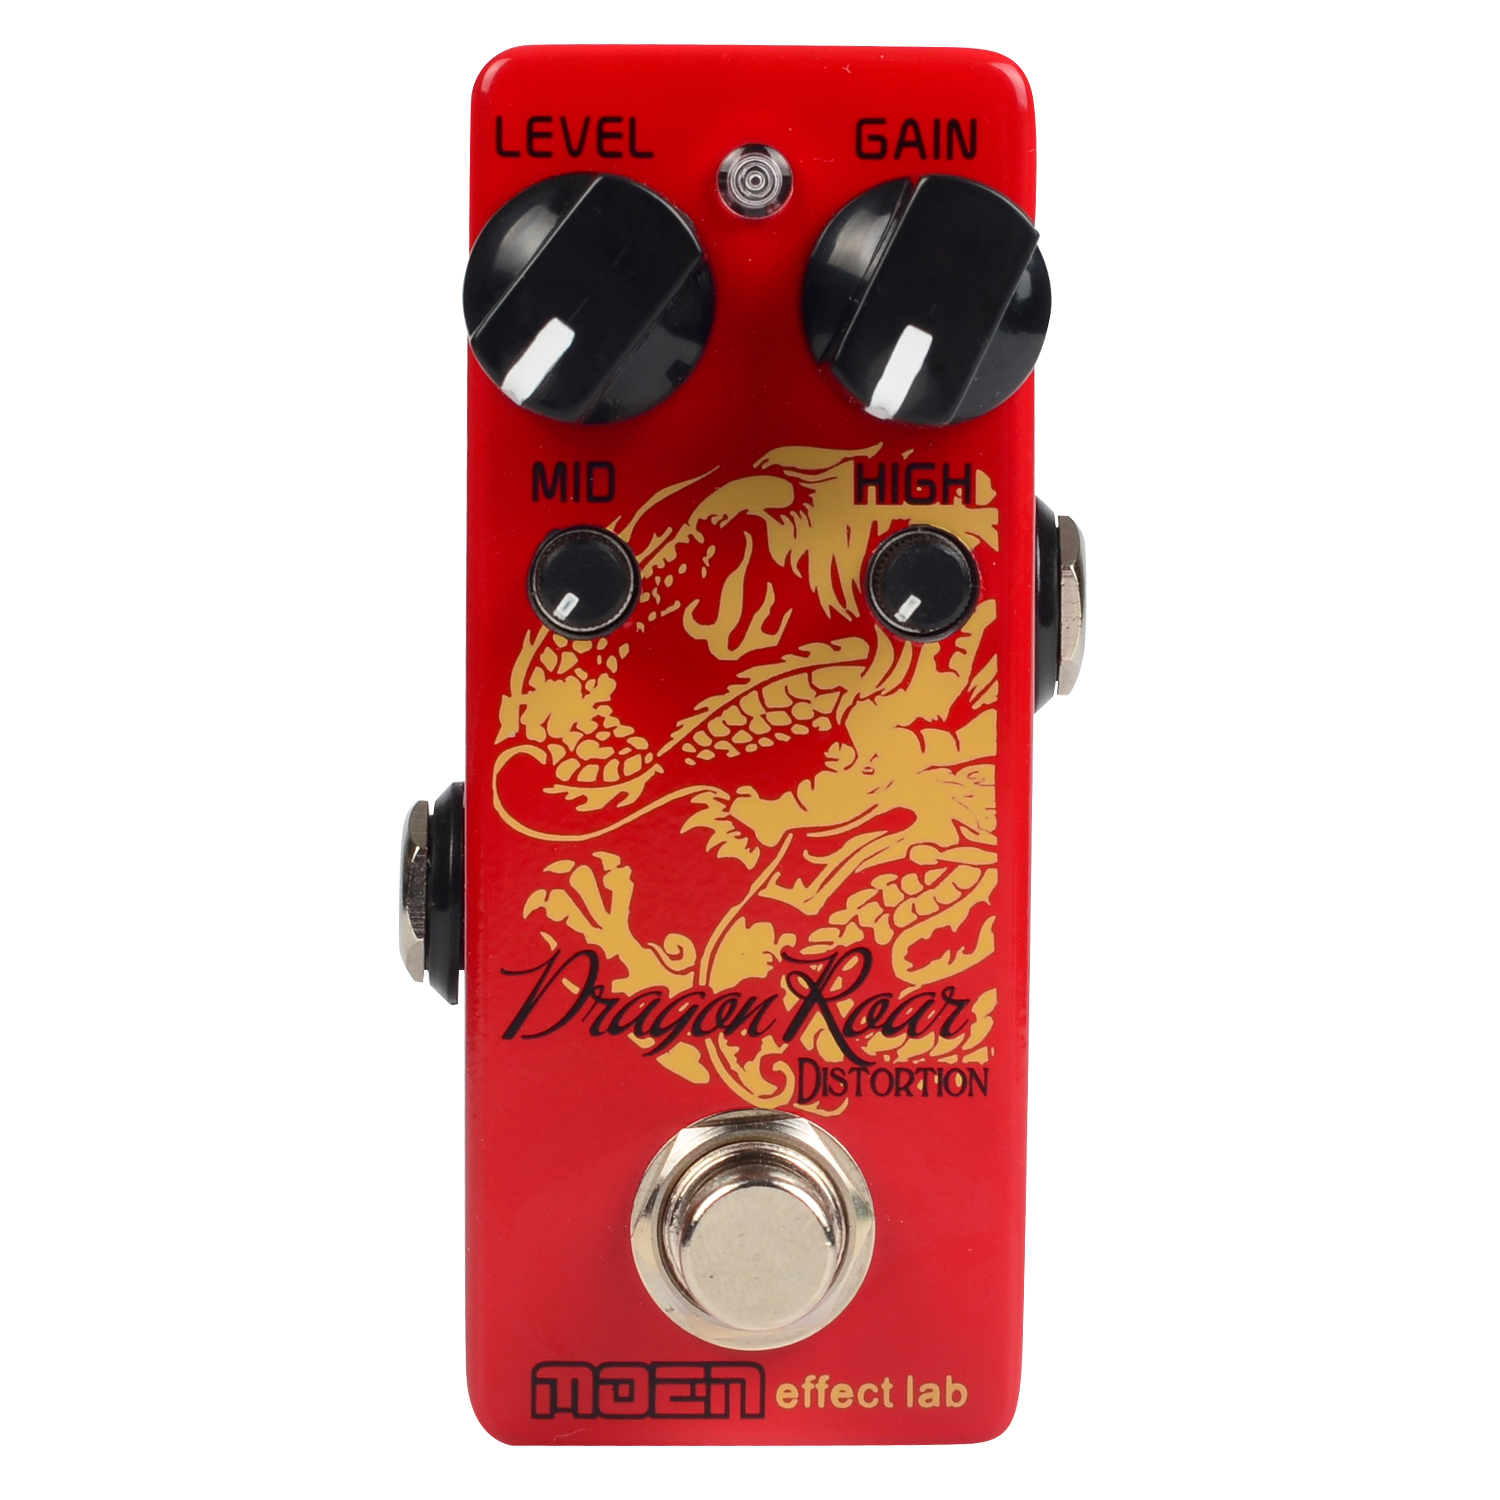 Moen Dragon Roar Distortion Guitar Effect Pedal Mini Stompbox Level Gain Mid High Controls for Electric Guitar  Ture Bypass aroma adr 3 dumbler amp simulator guitar effect pedal mini single pedals with true bypass aluminium alloy guitar accessories